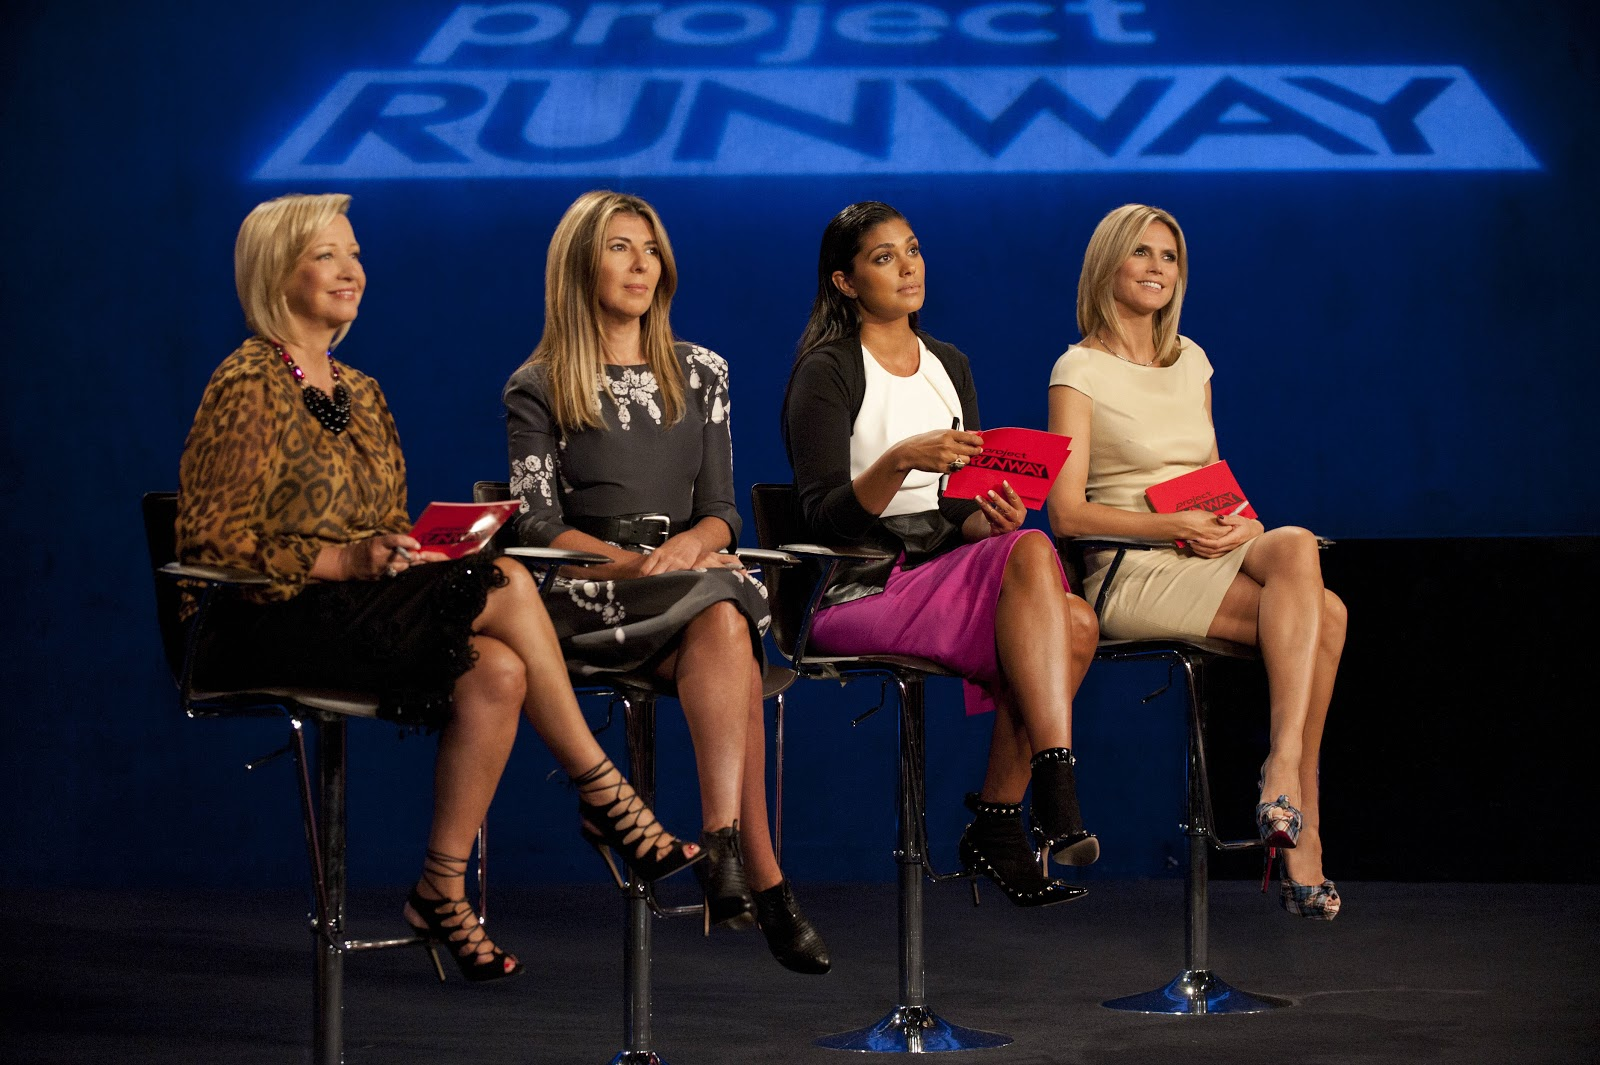 717d4409583 Blogging Project Runway - The Original Project Runway Fan Blog  More ...